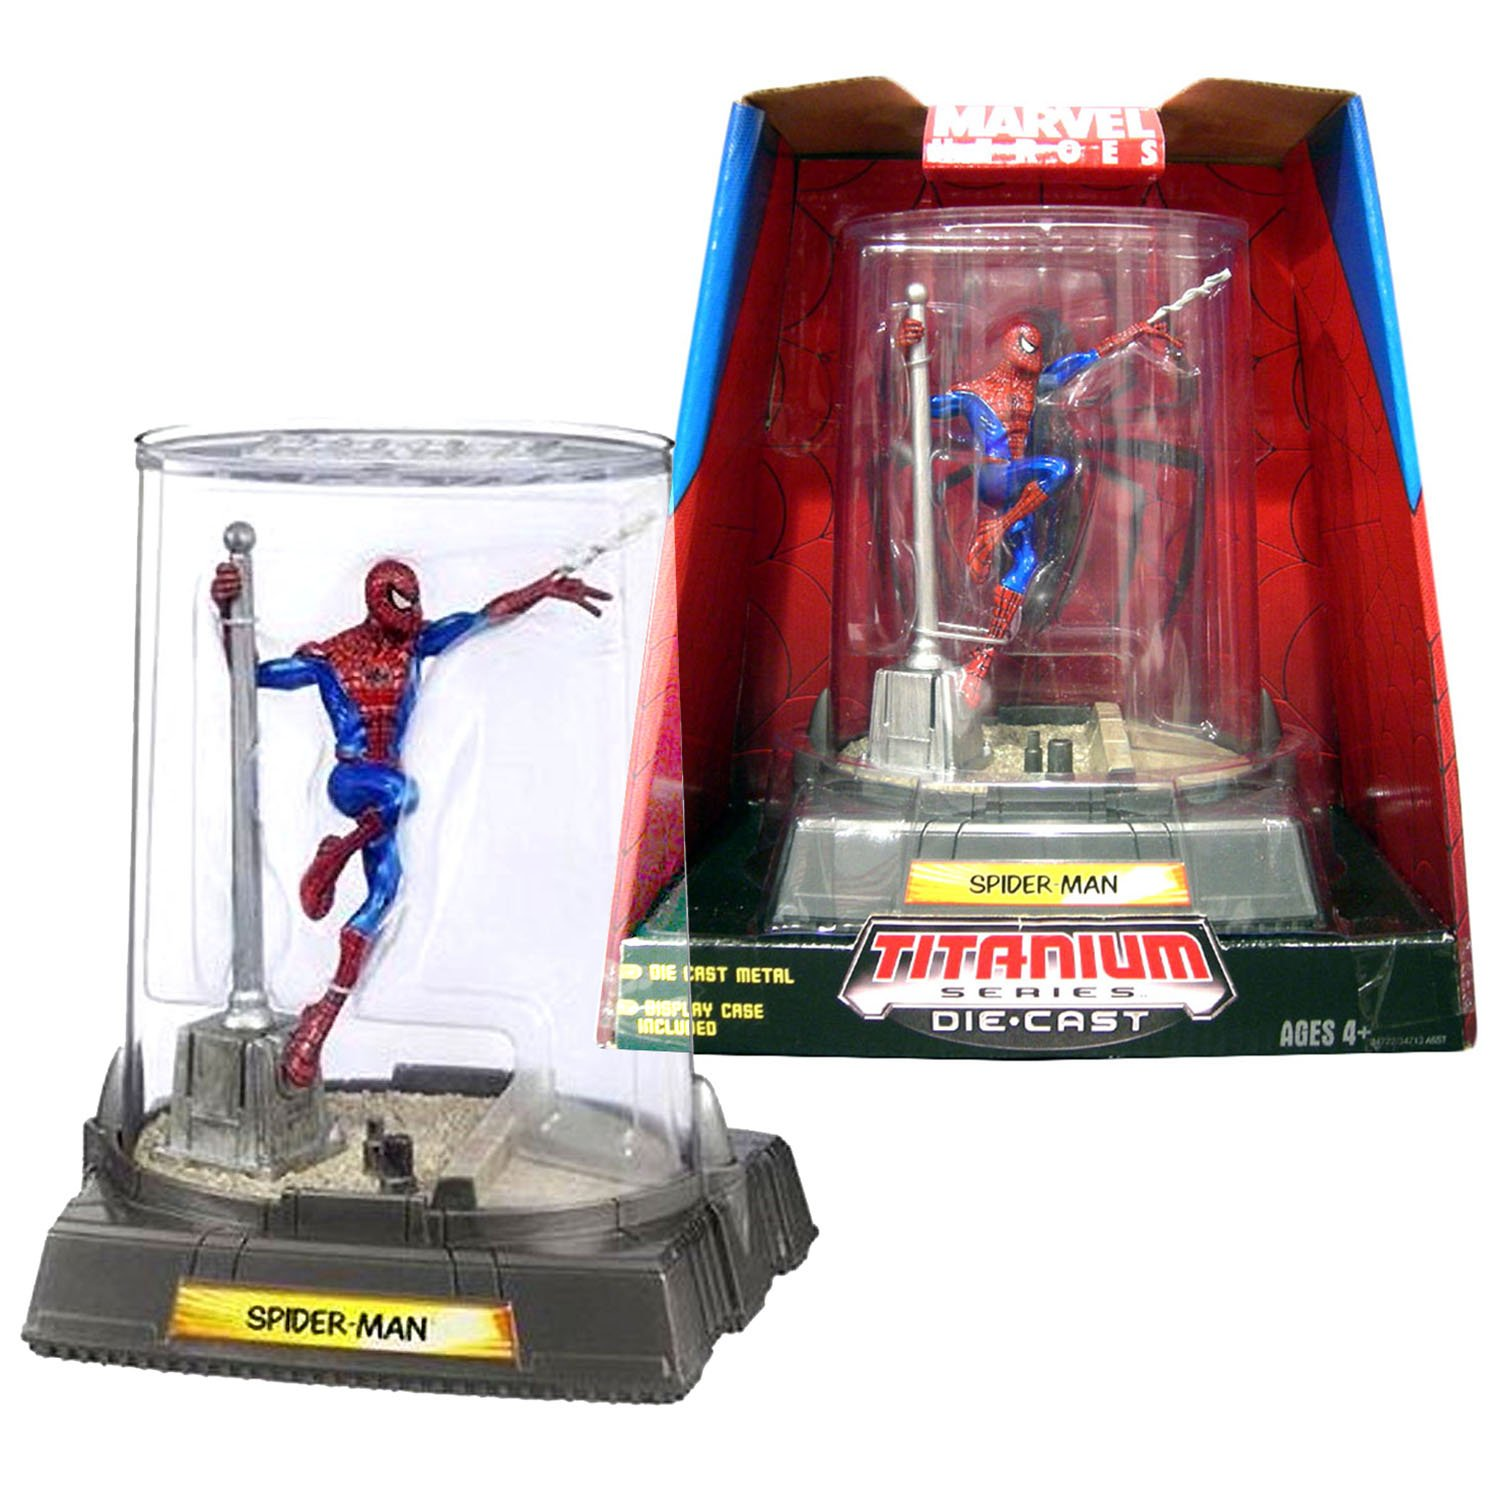 Titanium Die Cast Marvel Heroes Year 2006 Series 4 Inch Tall Action Figure Color Version SPIDER-MAN Hanging At The Pole with Display Case HSBR